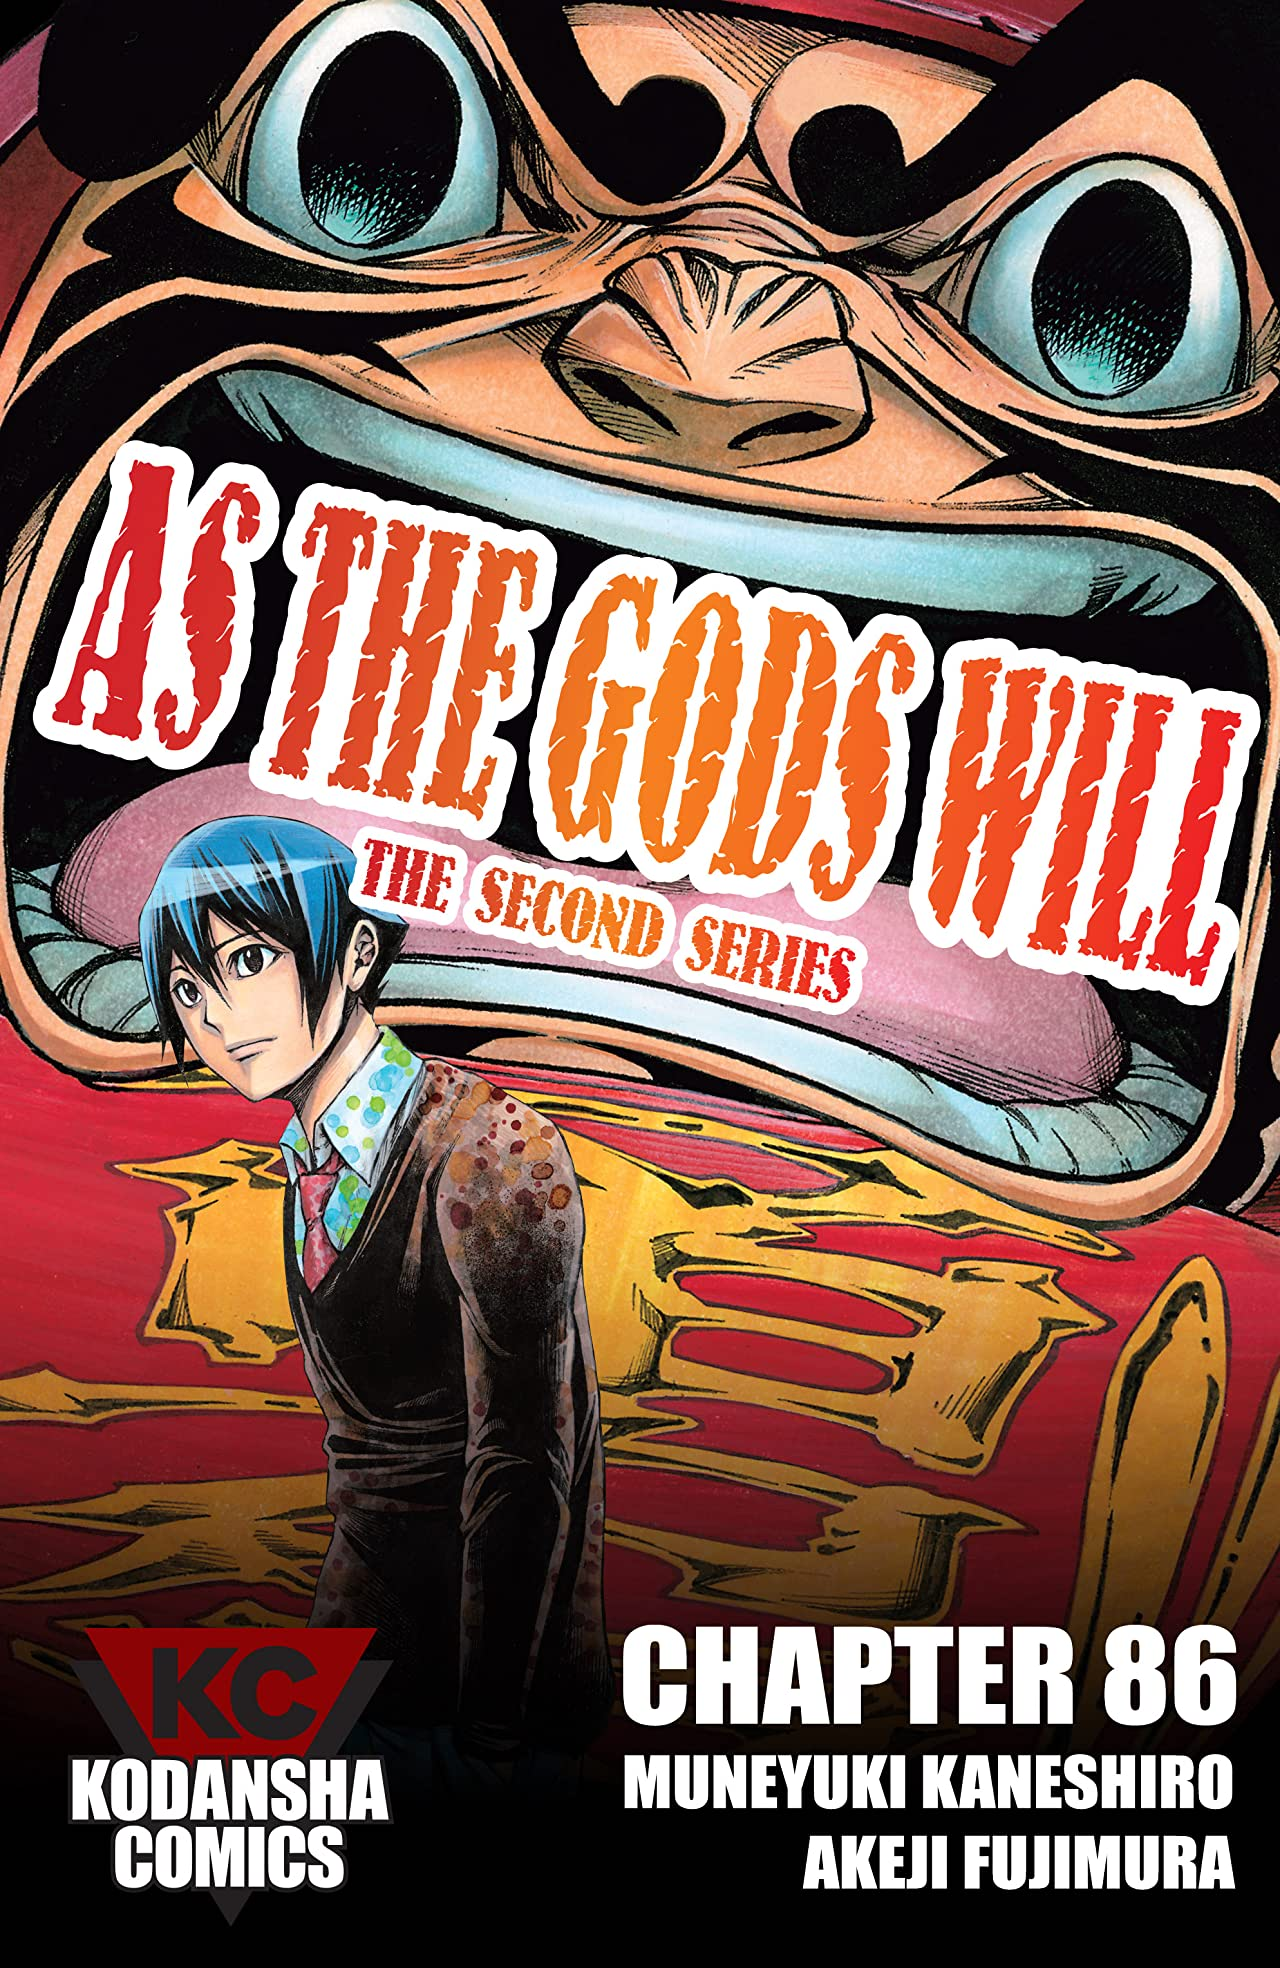 As The Gods Will: The Second Series #86